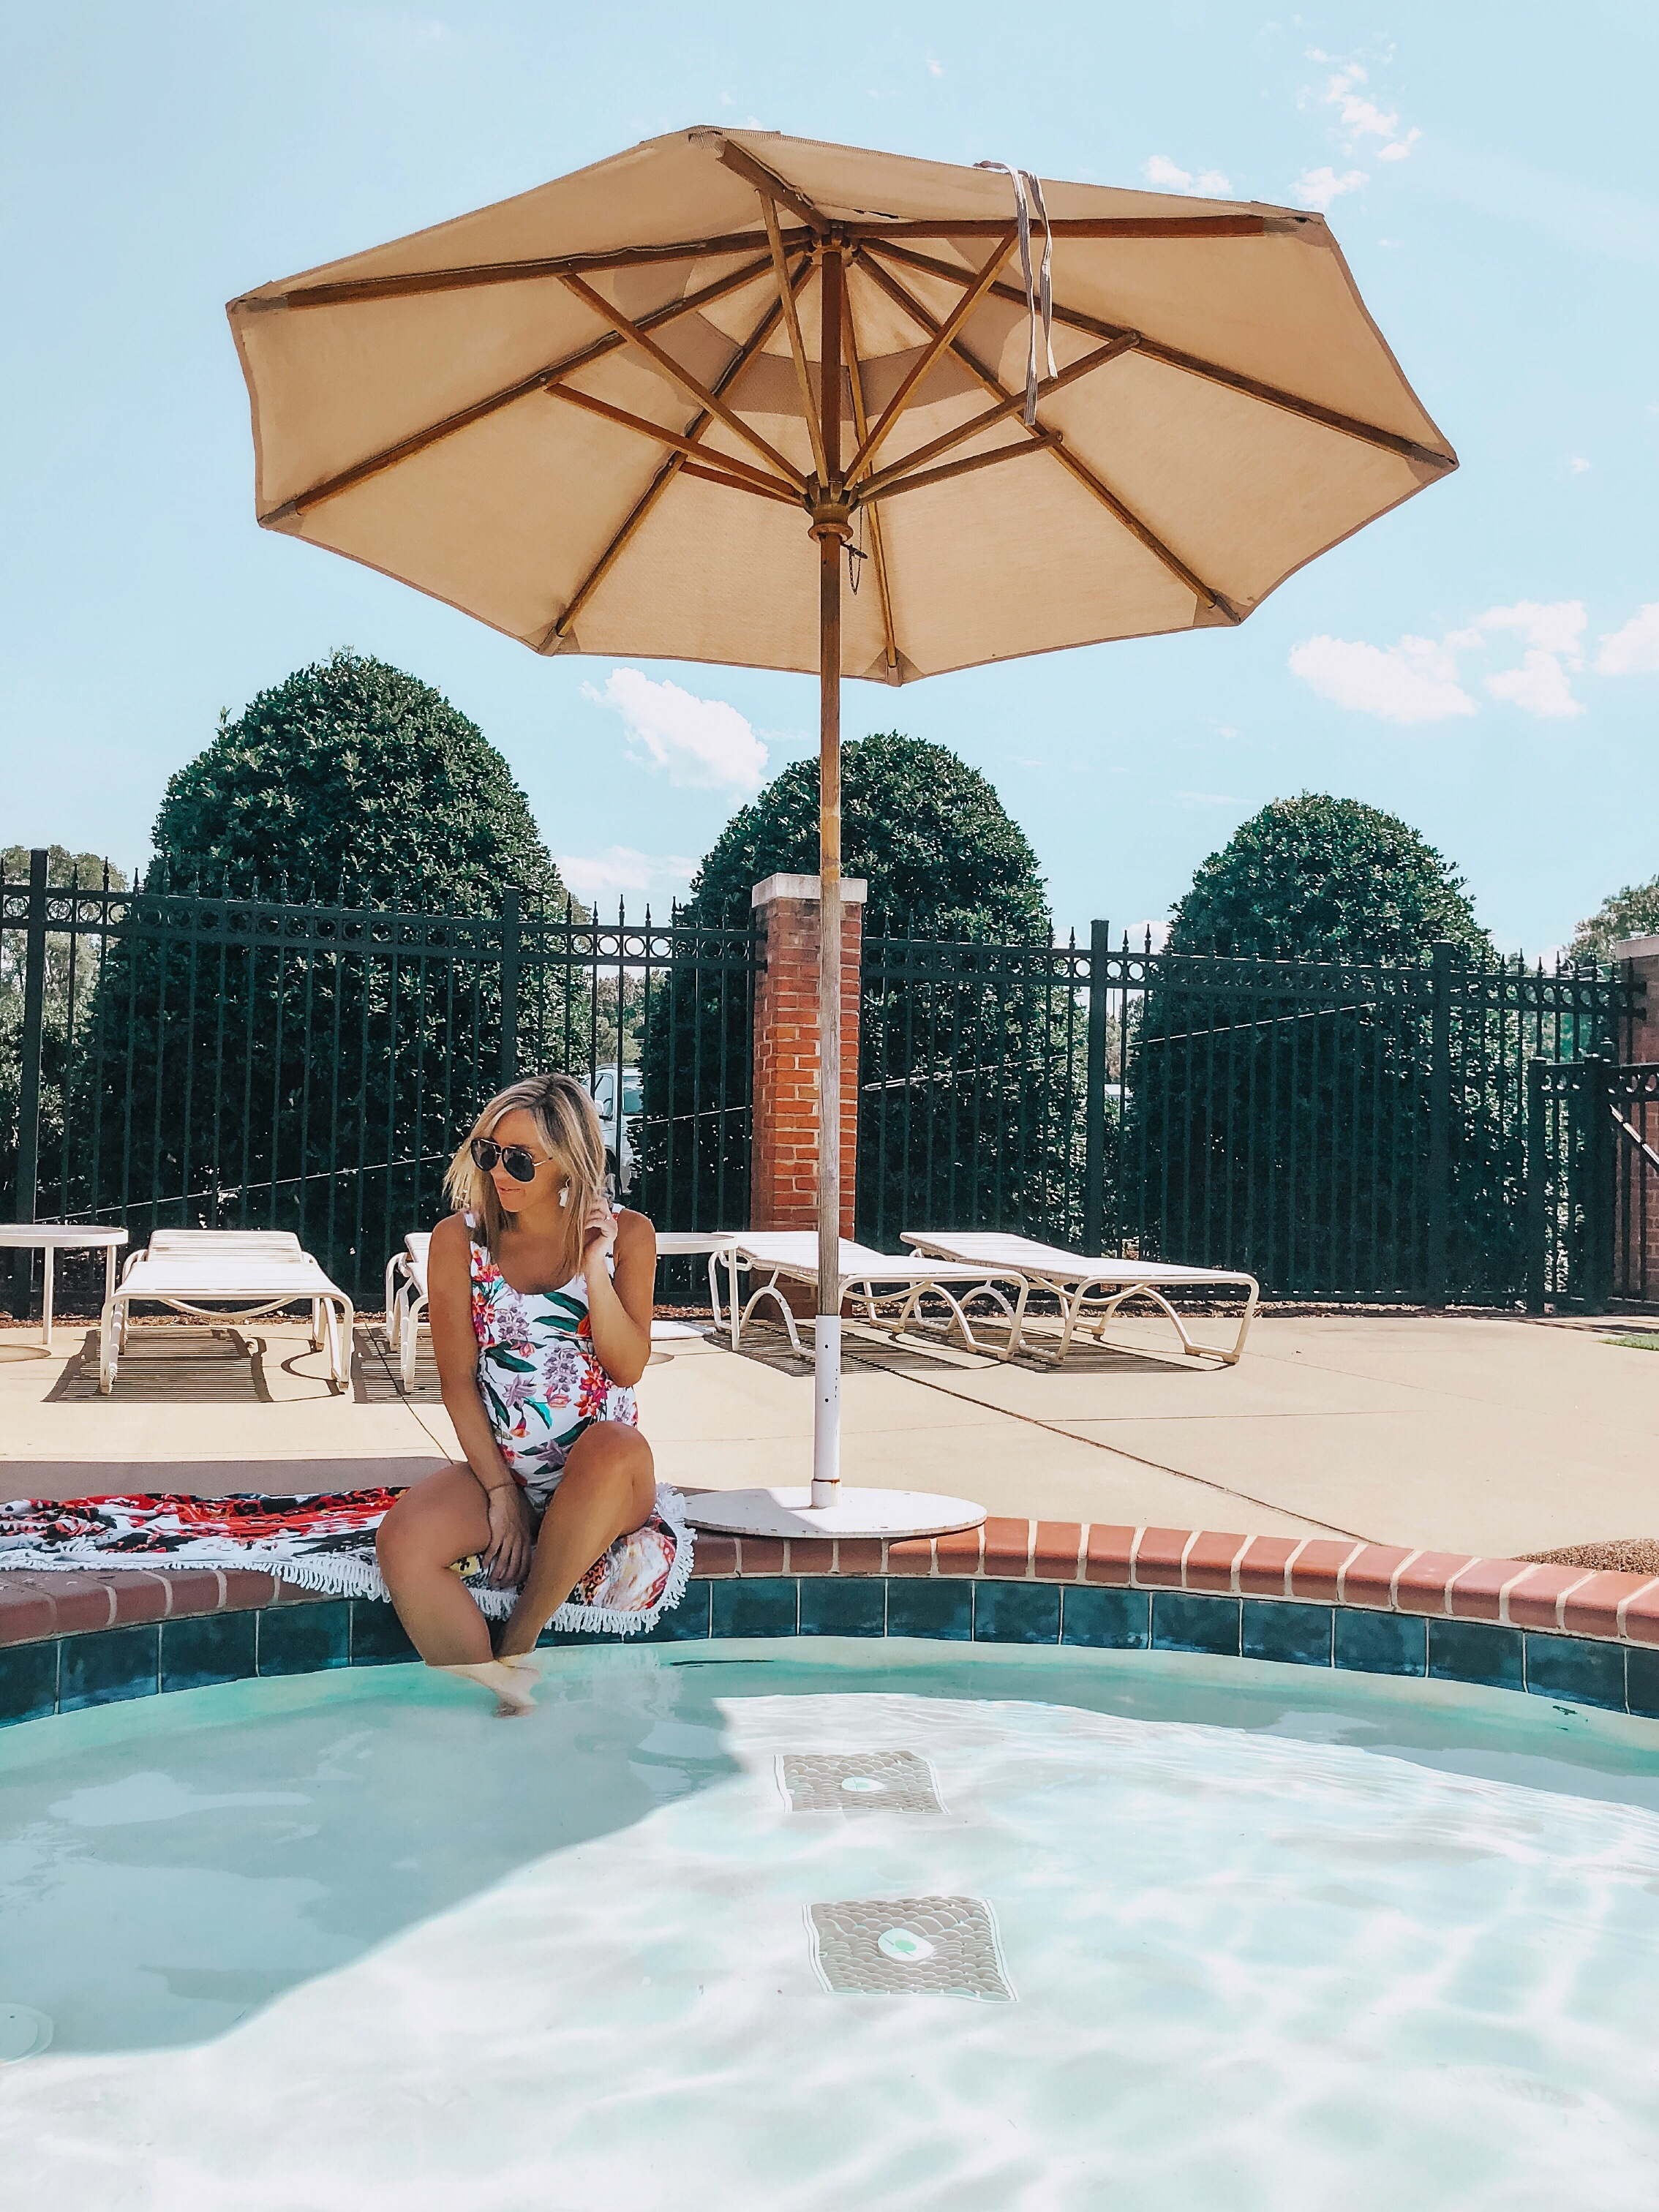 8027997bd3f5f It's only taken 2 and 3/4 pregnancies before actually finding CUTE  maternity swimsuits! This is the first time I've been really pregnant in  the summer, ...